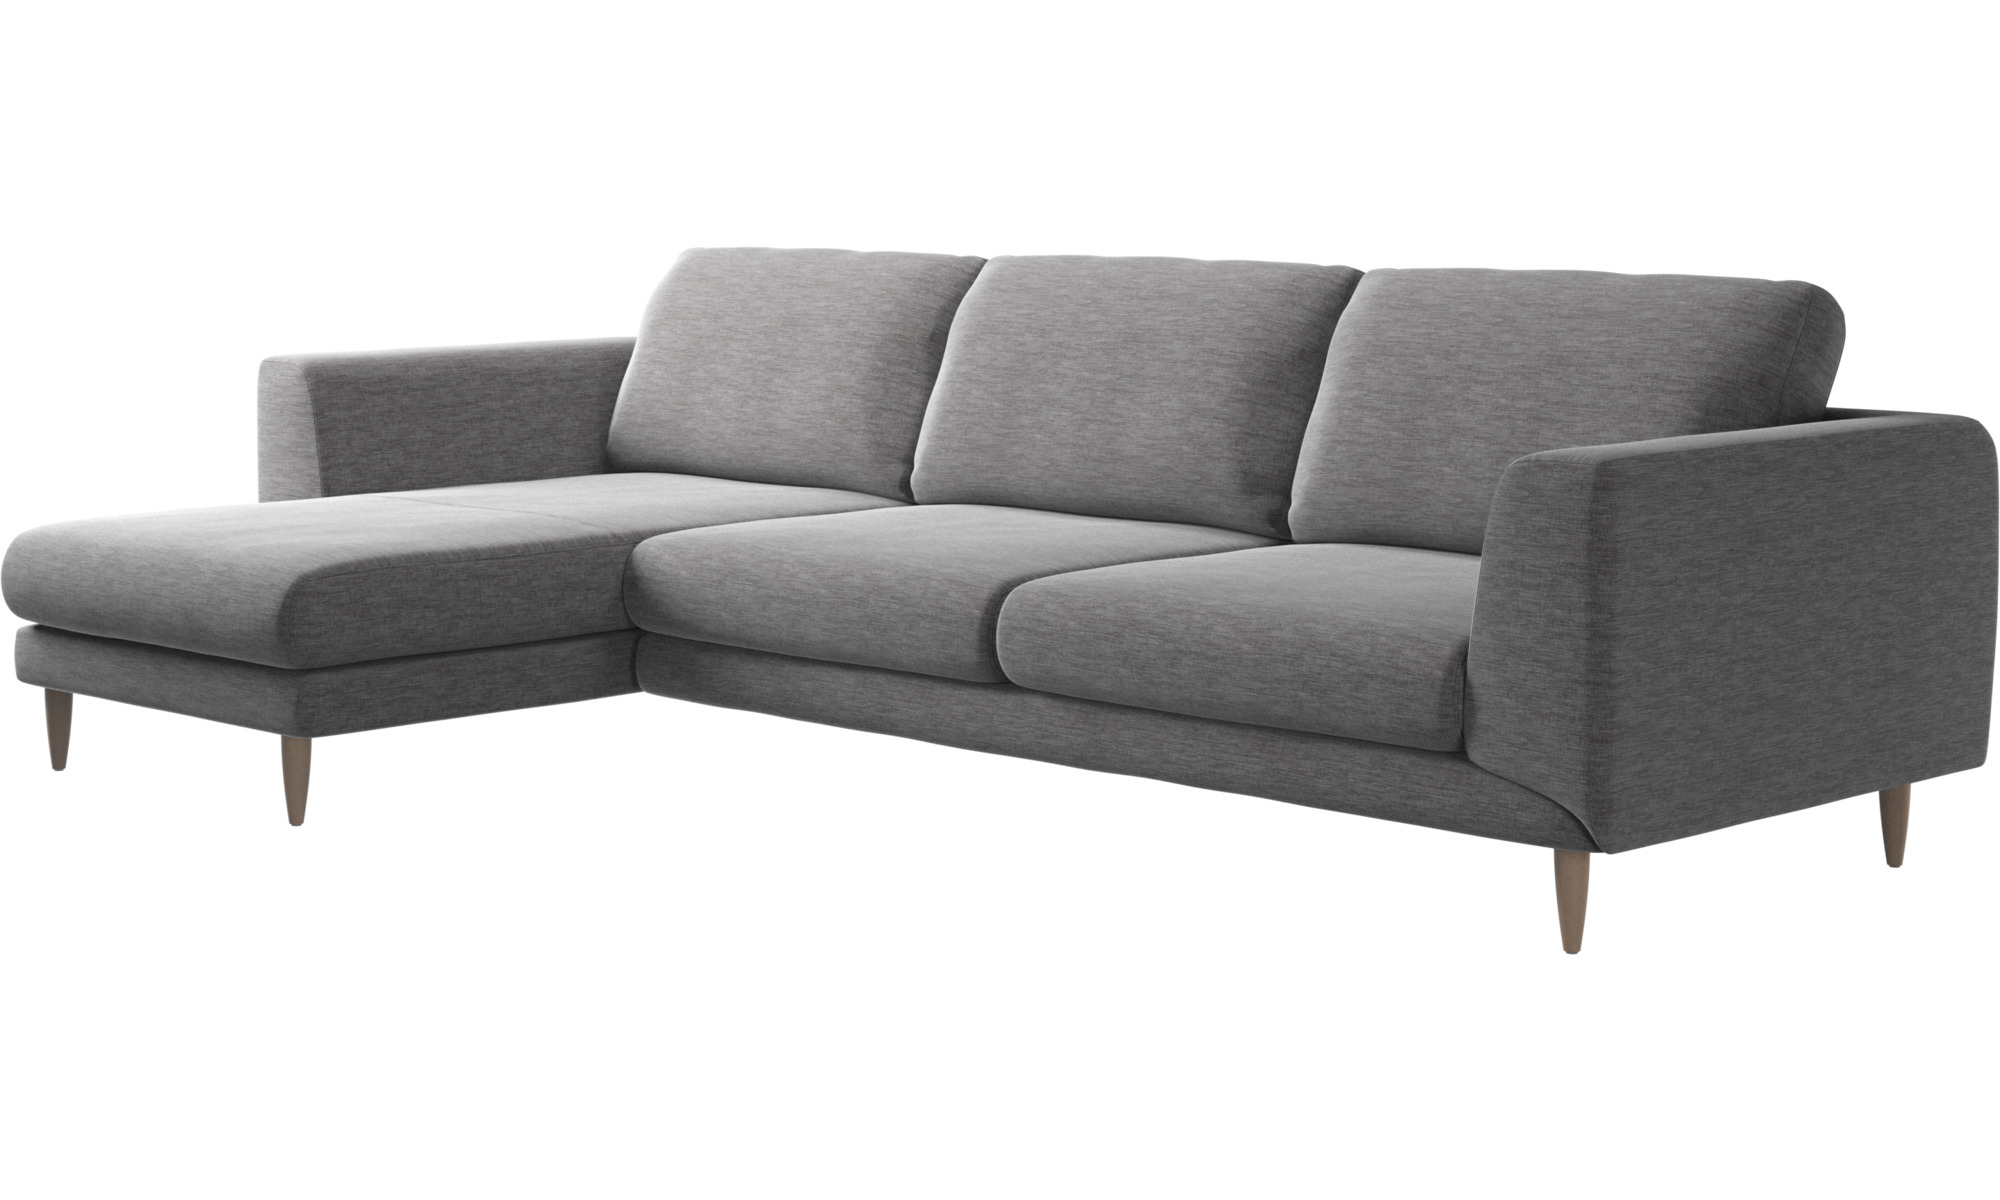 Chaise Longue Sofas Fargo Sofa With